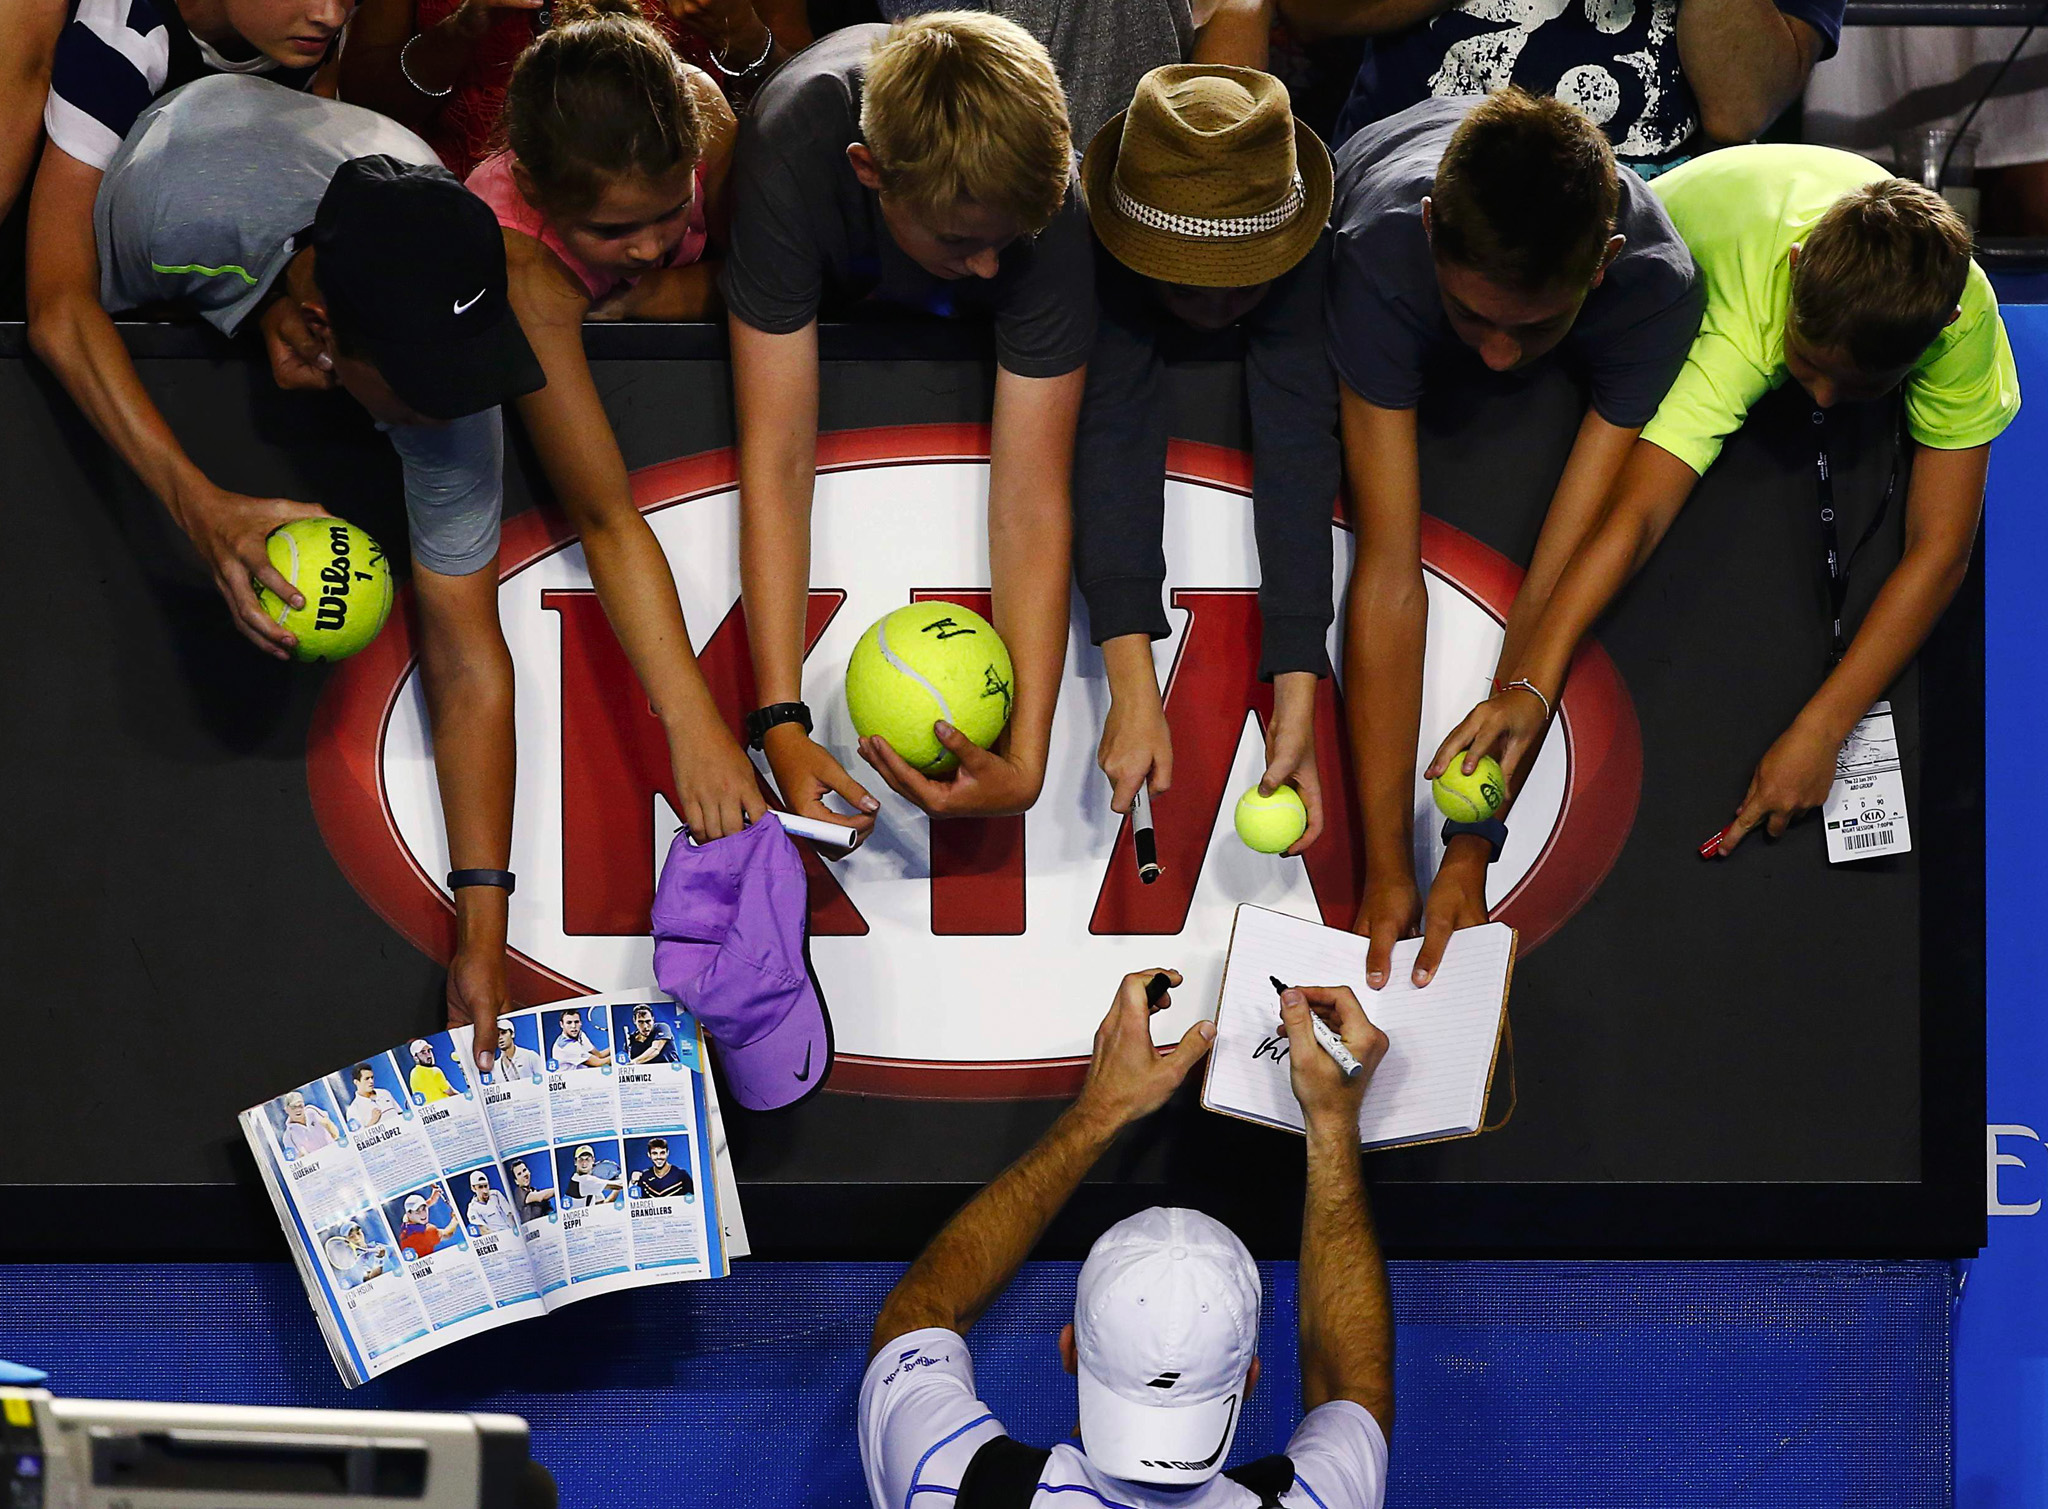 Benjamin Becker of Germany signs autographs after defeating Lleyton Hewitt of Australia in their men's singles second round match at the Australian Open.